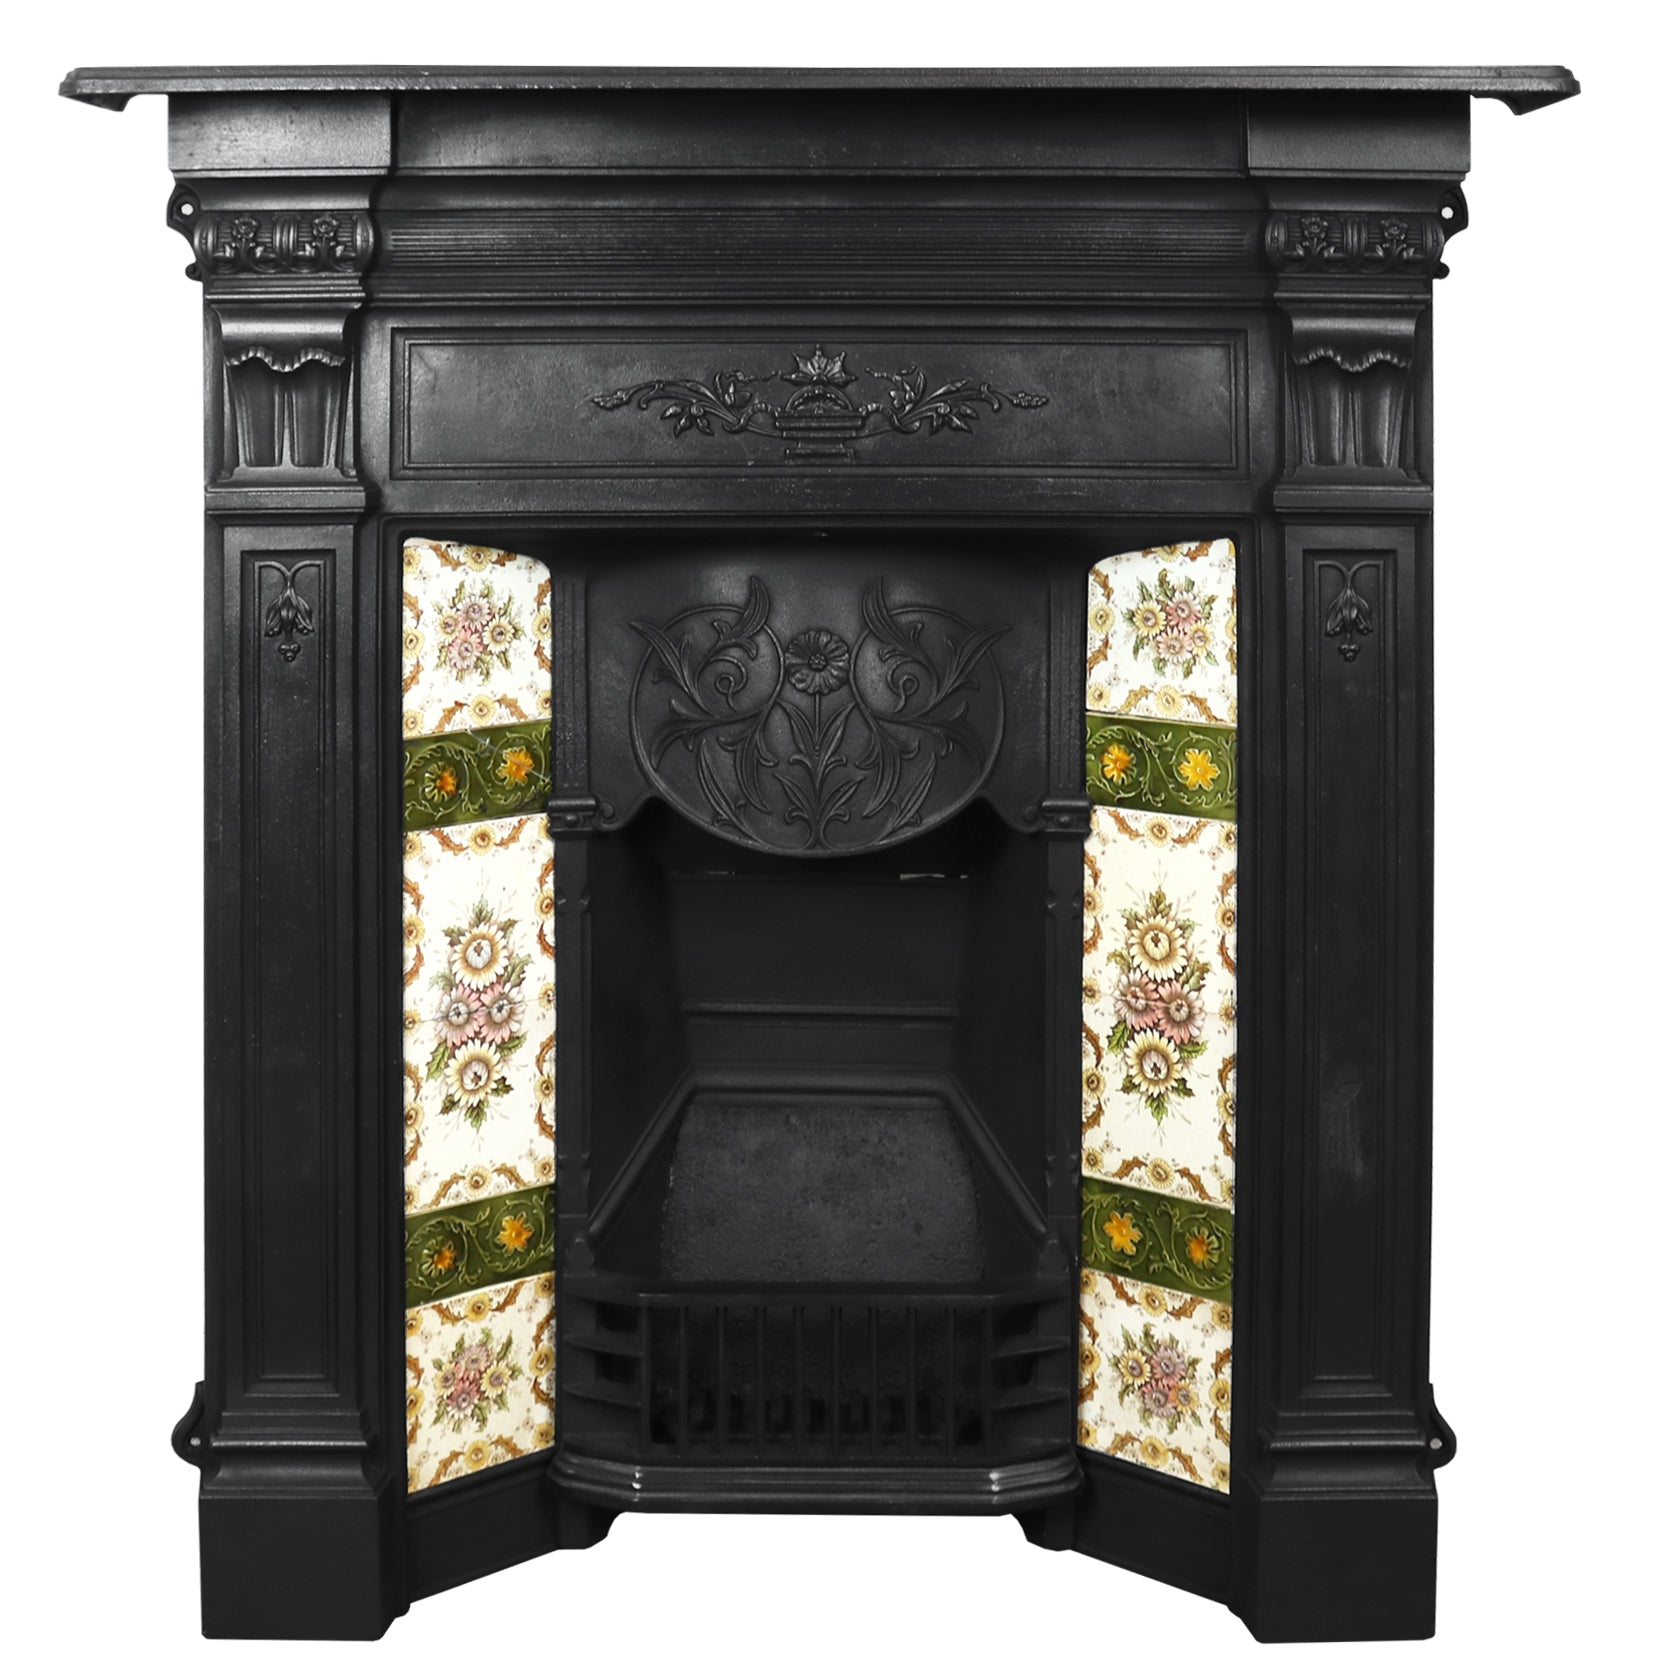 Edwardian Tiled Combination Fireplace - The Architectural Forum